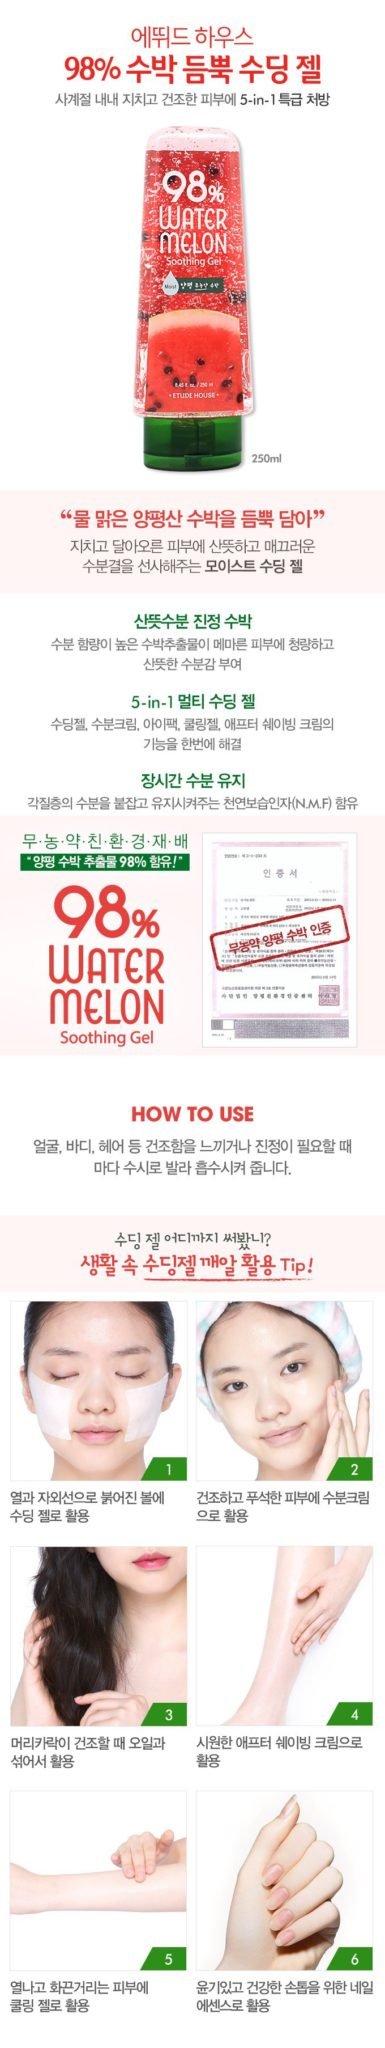 Etude House 98 Water Melon Soothing Gel 250ml malaysia singapore indonesia